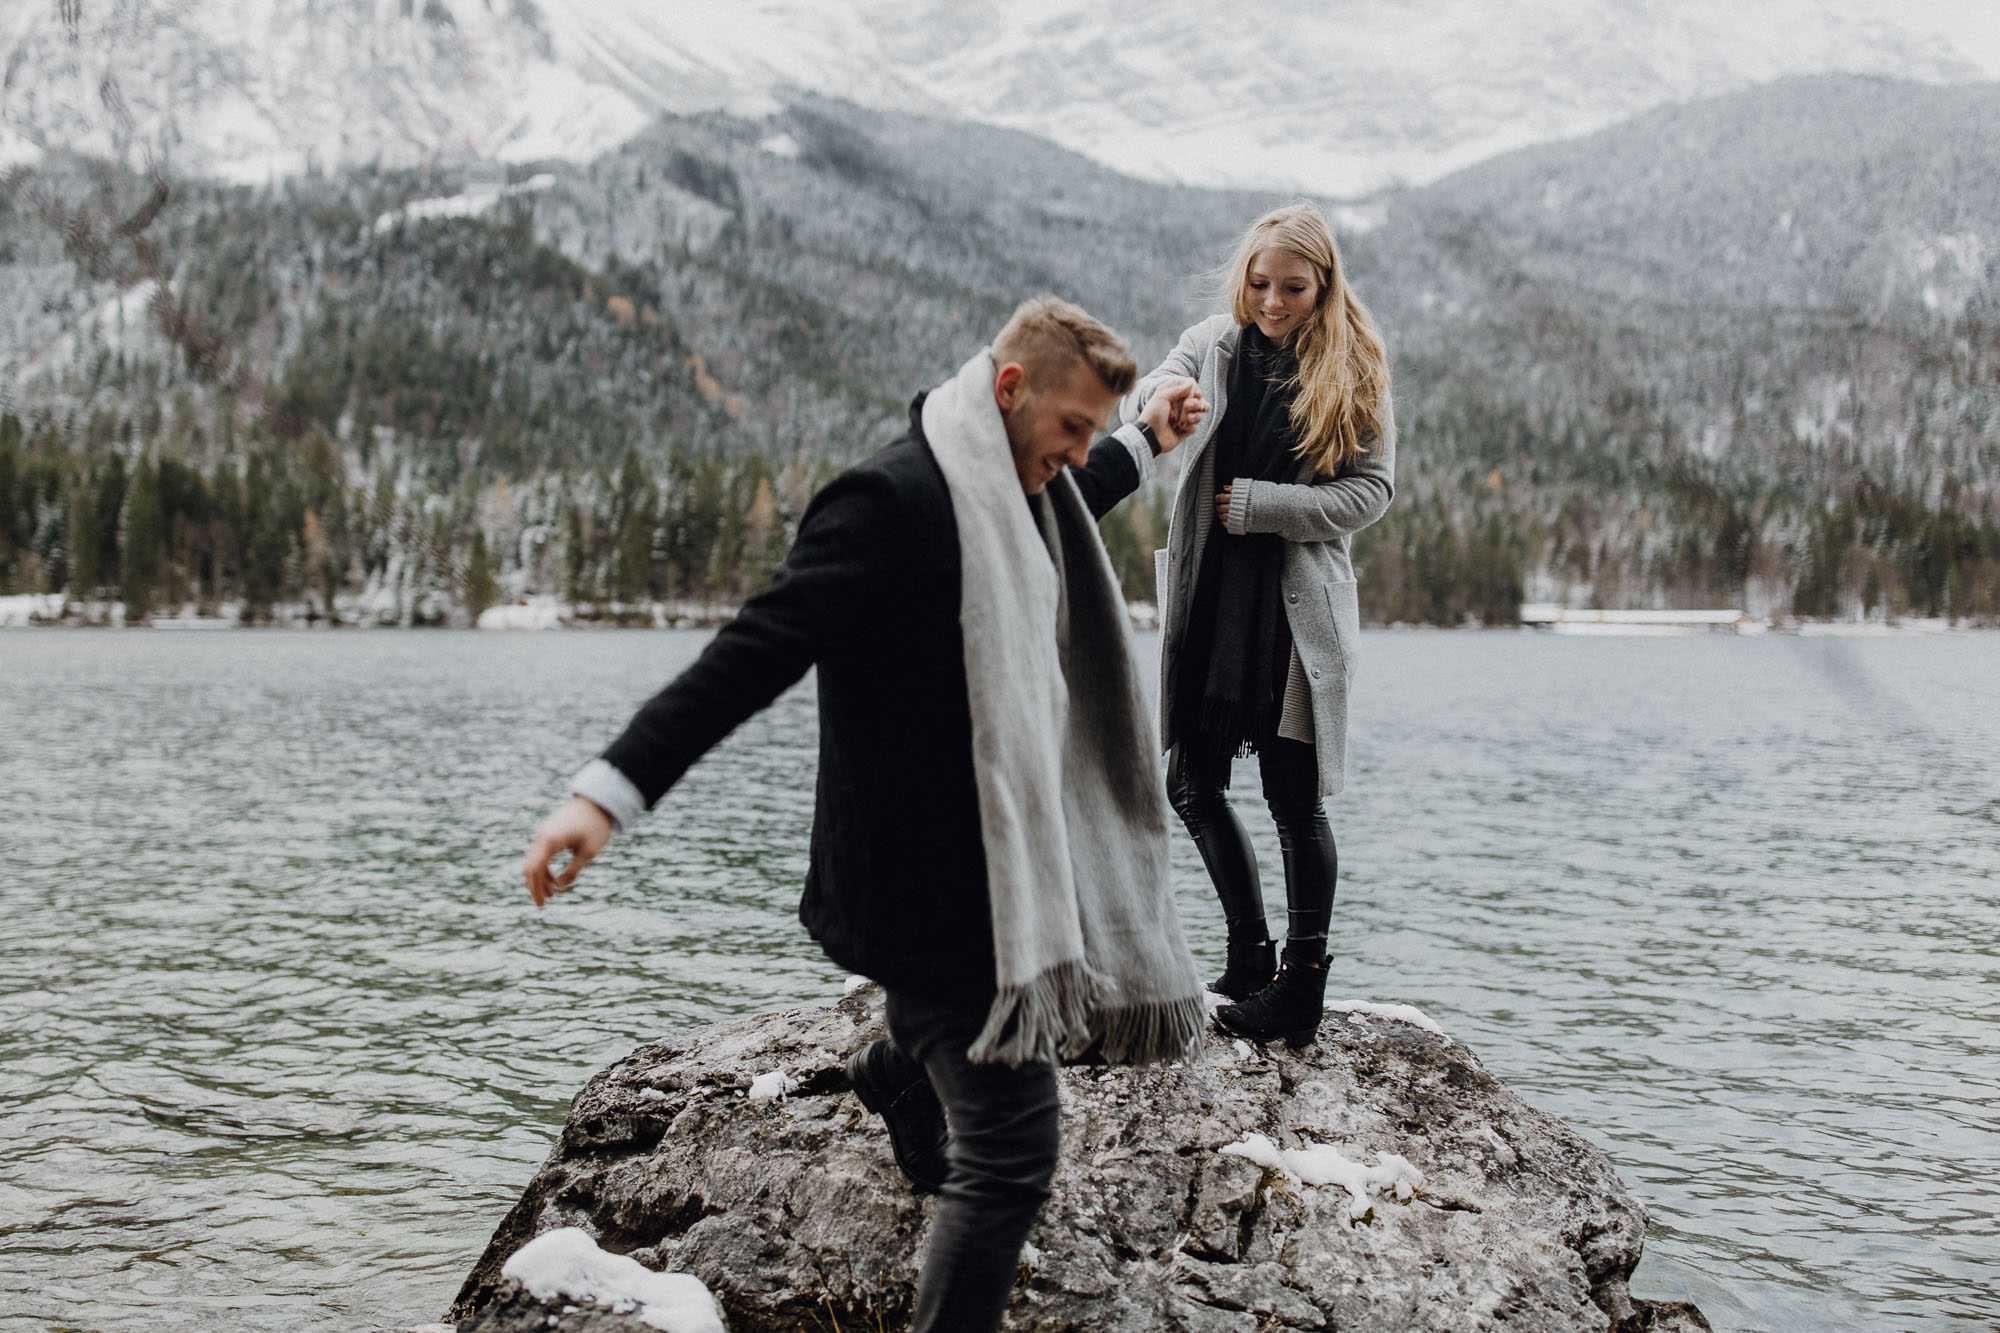 Winterliches Paarshooting am Eibsee - Raissa + Simon Fotografie